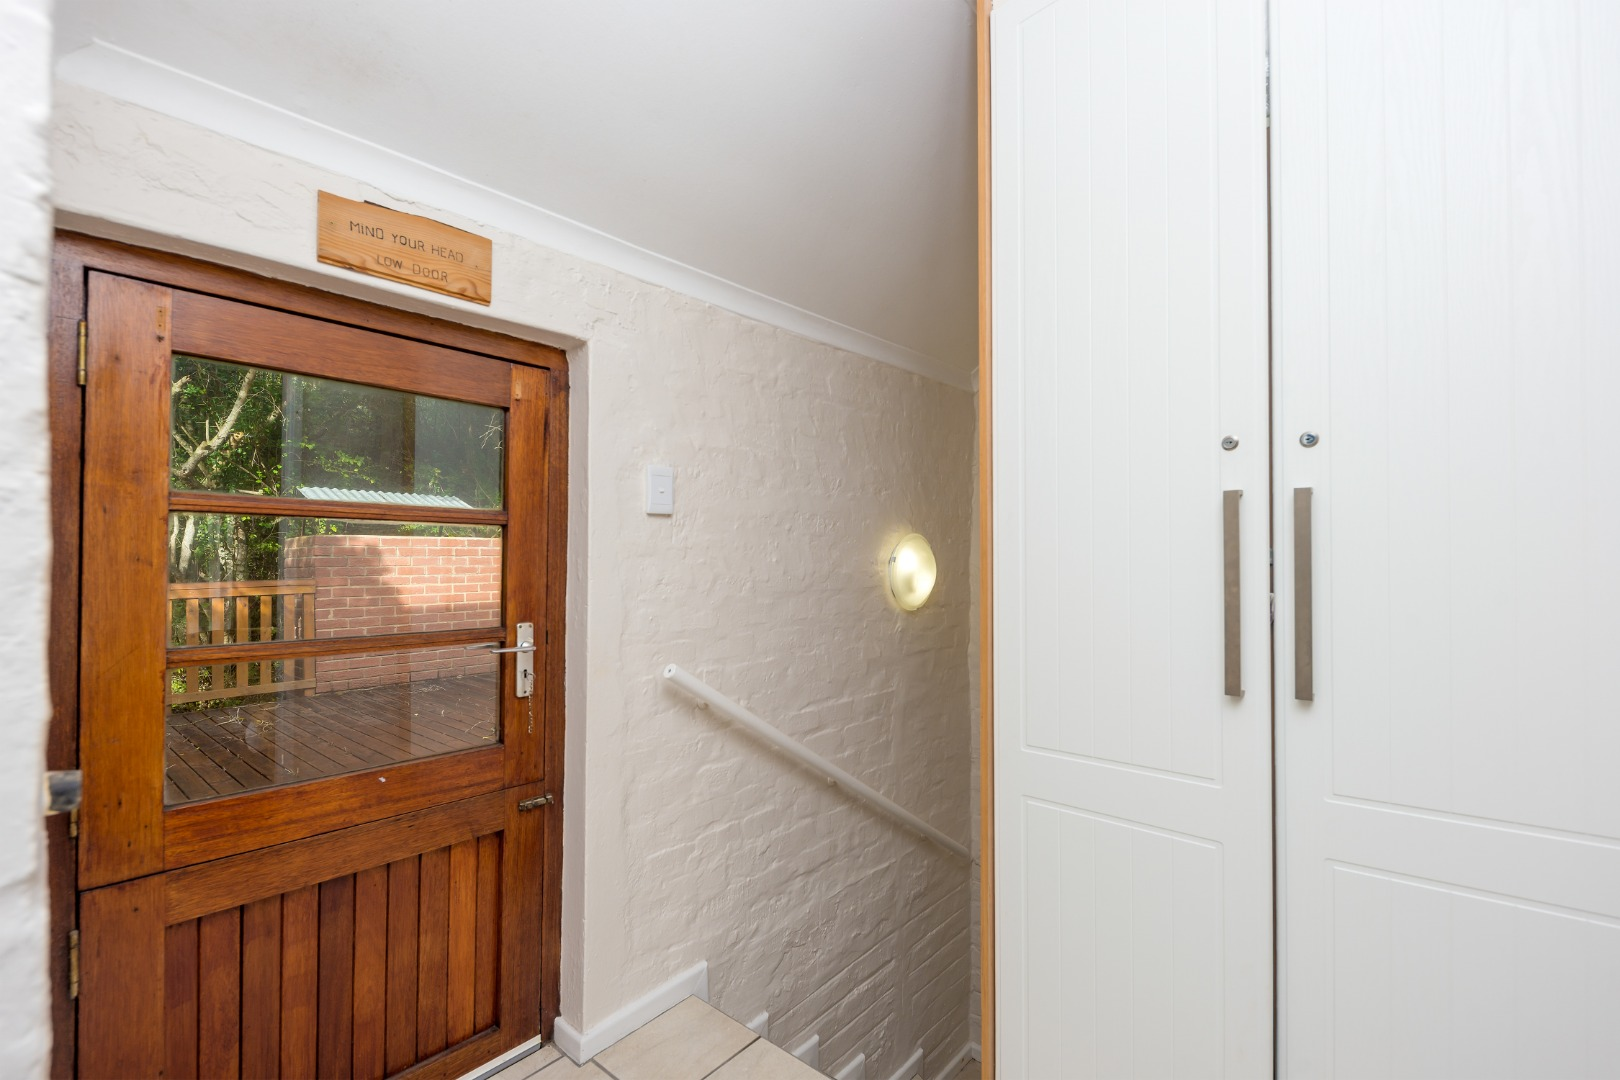 3 Bedroom House For Sale in Victoria Bay